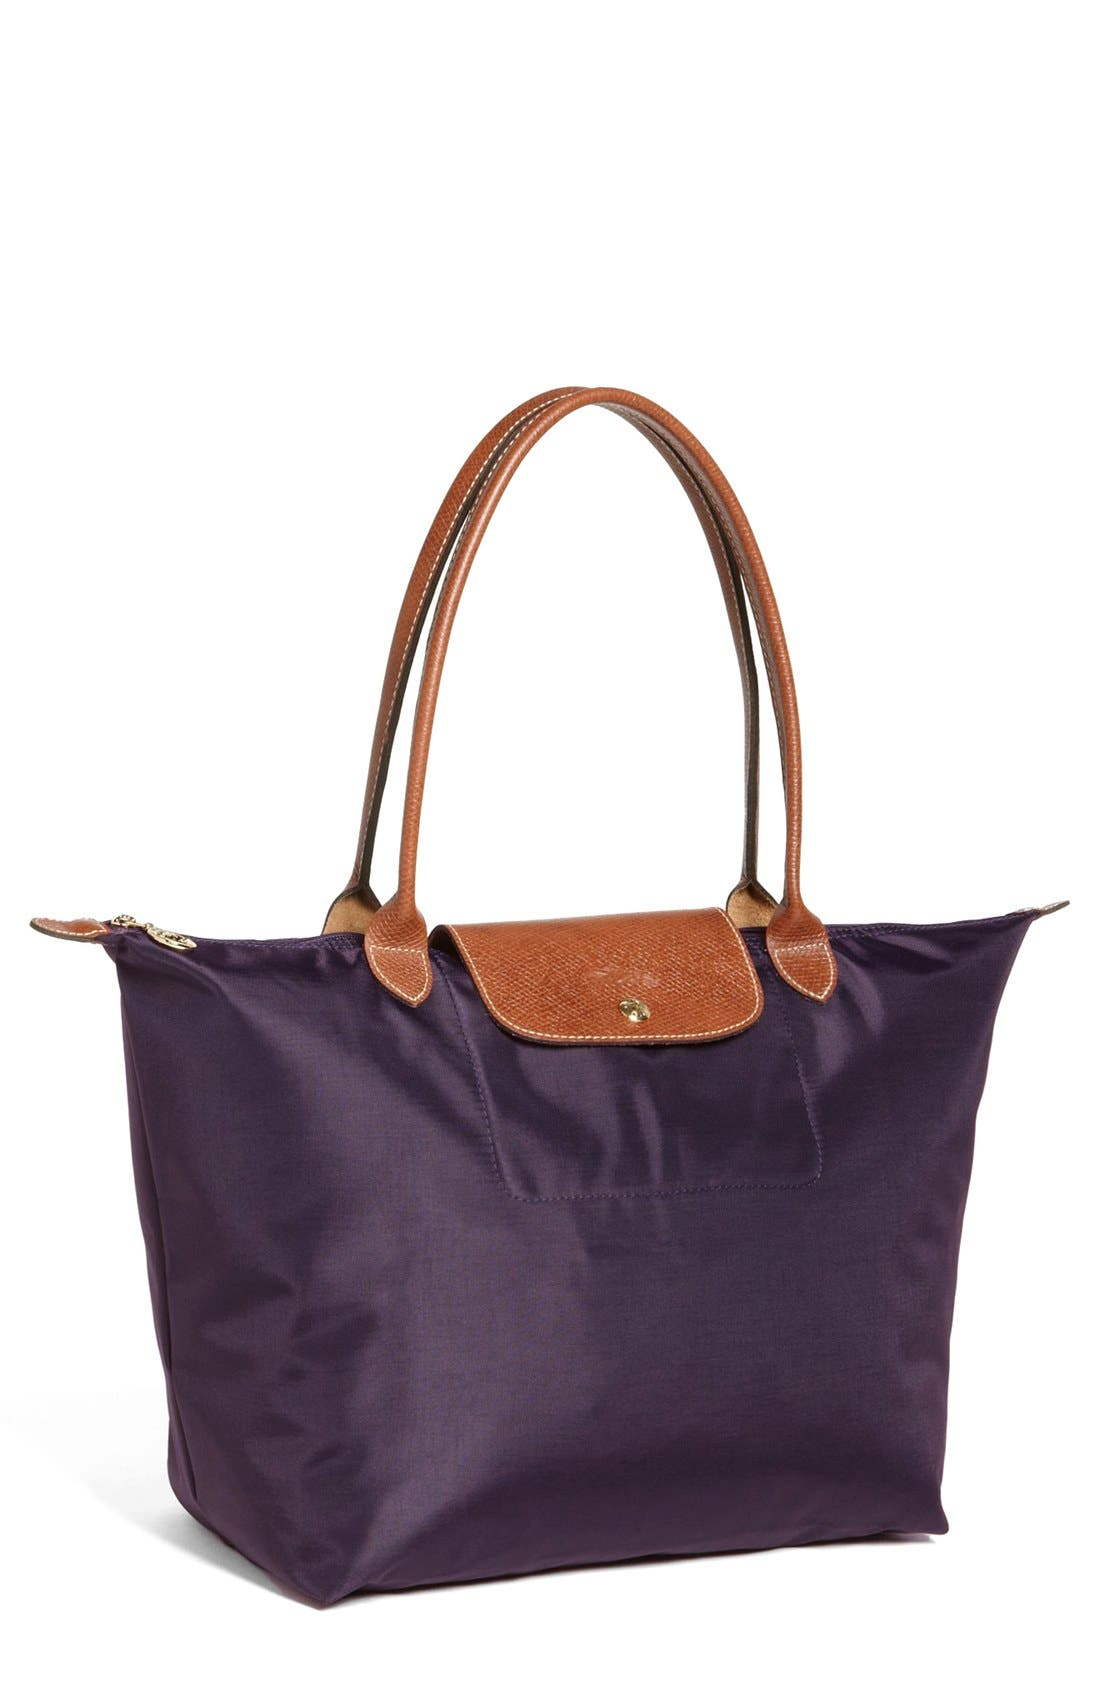 Alternate Image 1 Selected - Longchamp 'Large Le Pliage' Nylon Tote